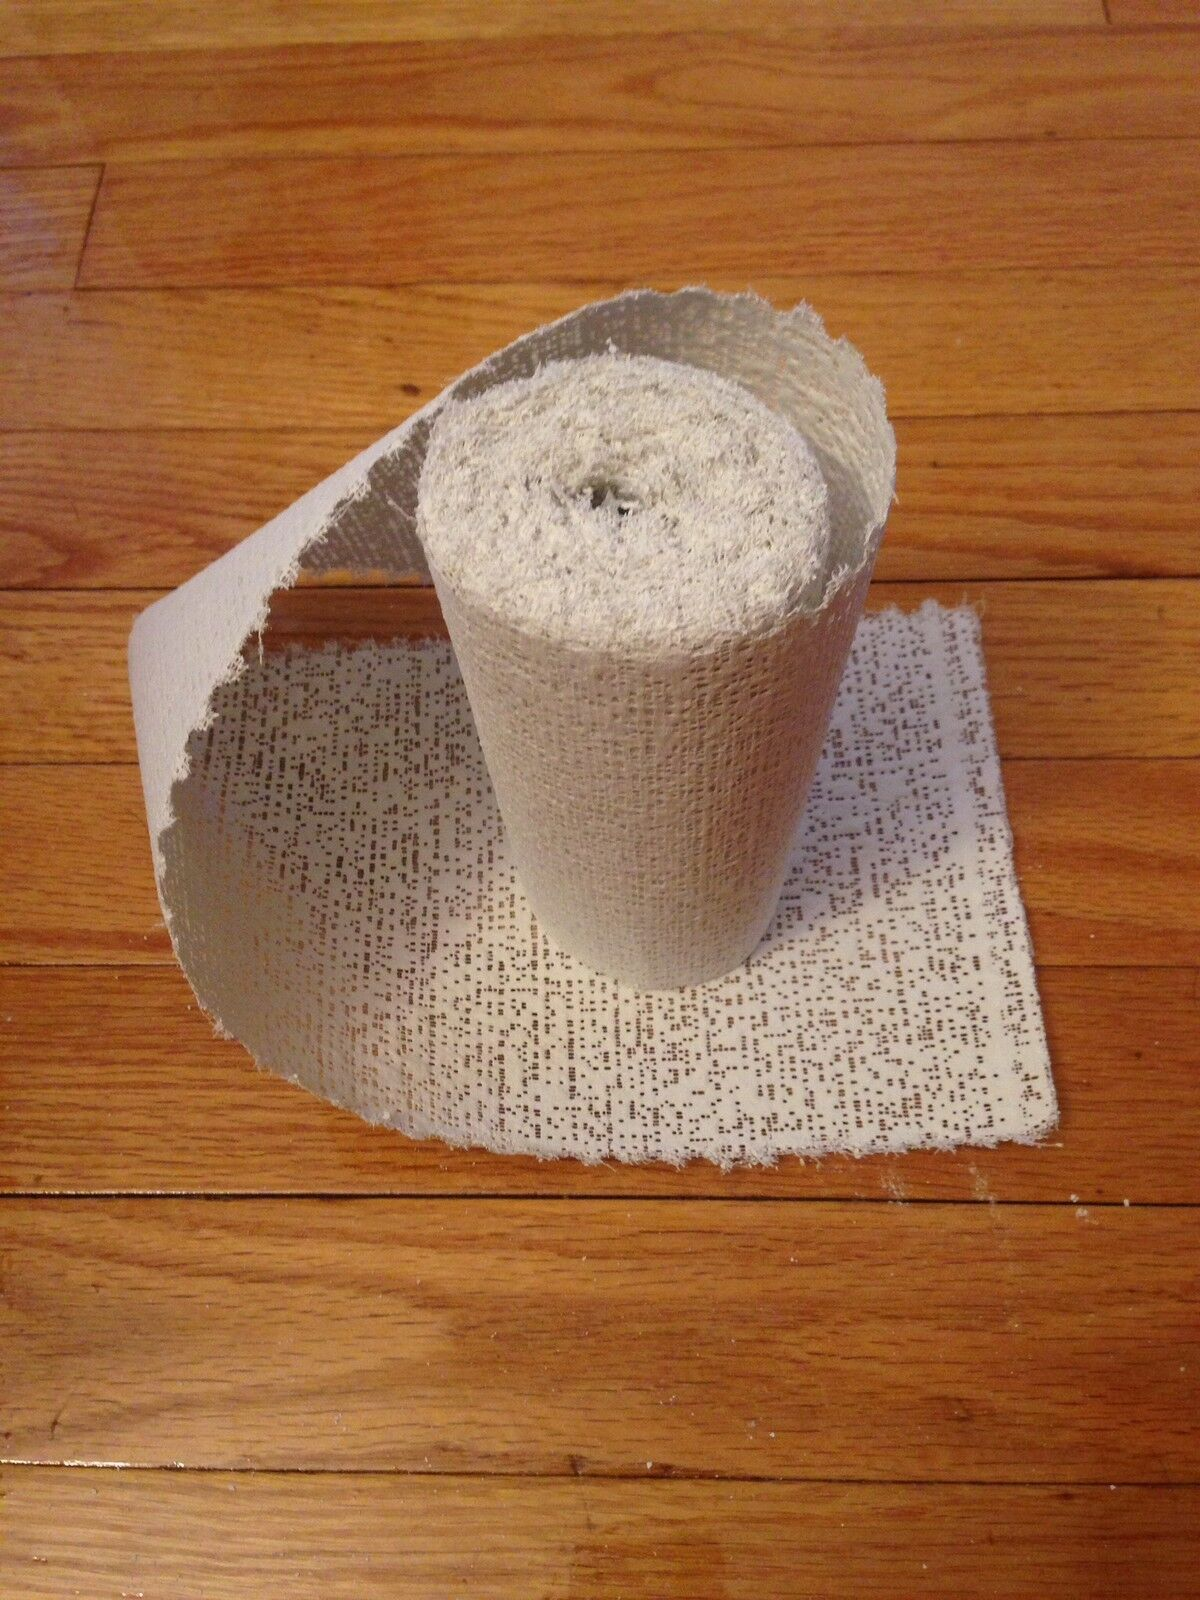 Plaster of Paris Rolls,Cloth,Hobby,Train,Pregnant Belly Cast Kit,Yesoterapia /""